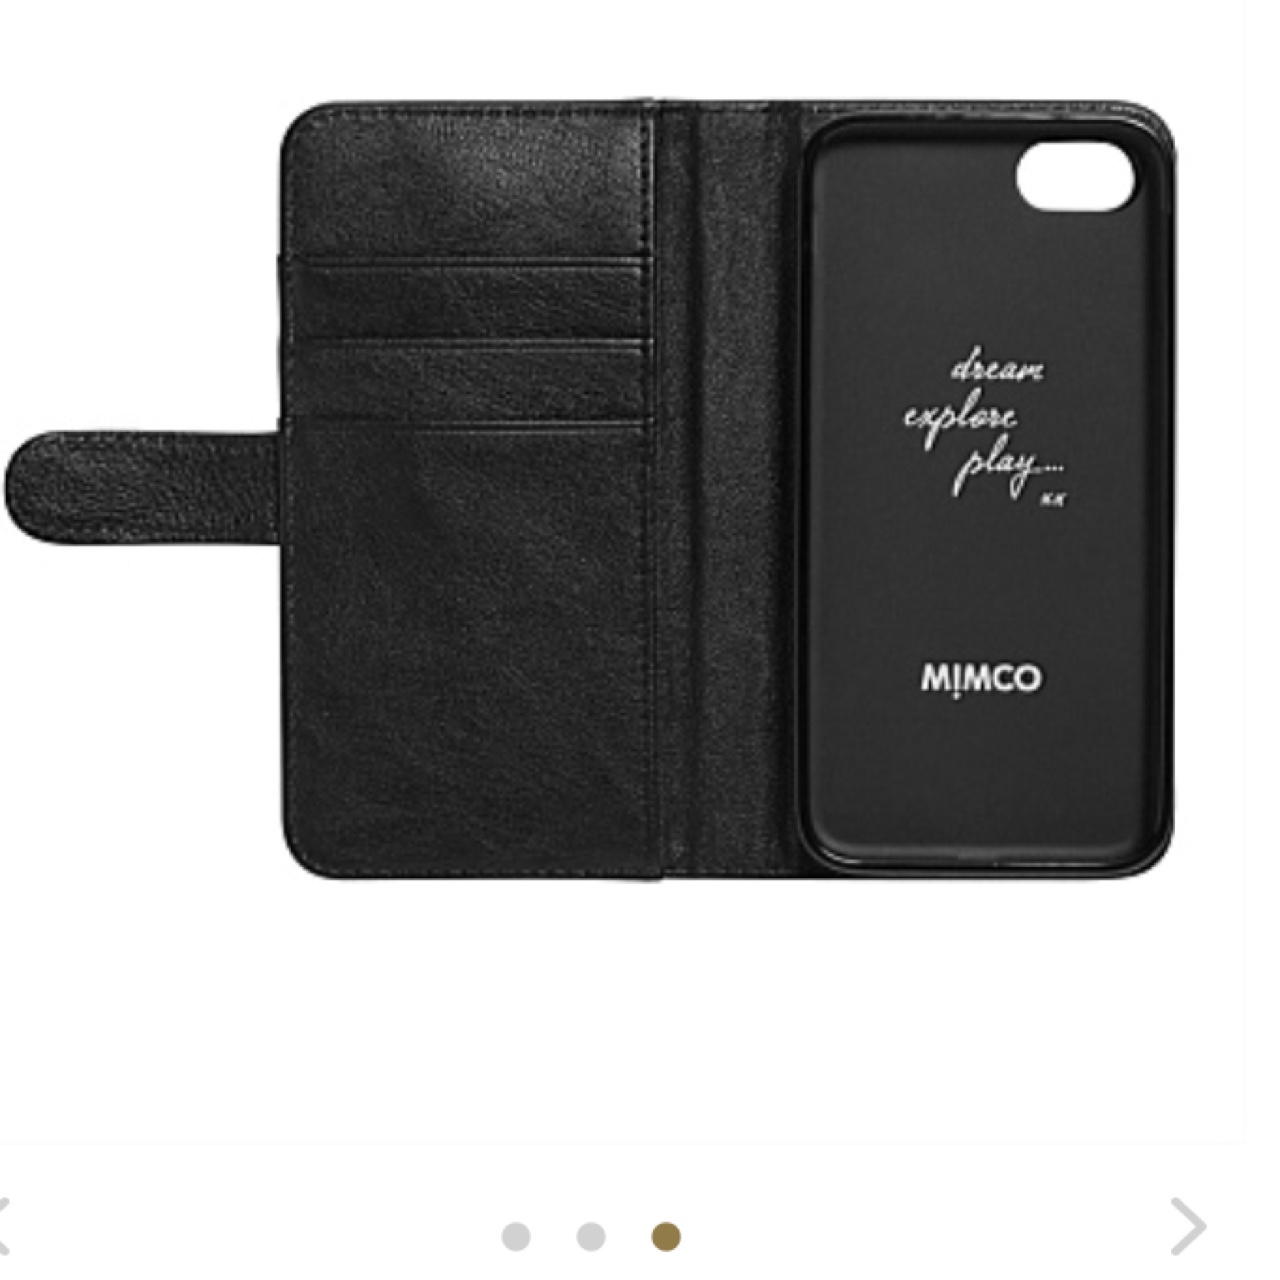 newest collection 32b99 aeb51 MIMCO IPHONE 6 FLIP PHONE CASE Used once Perfect... - Depop